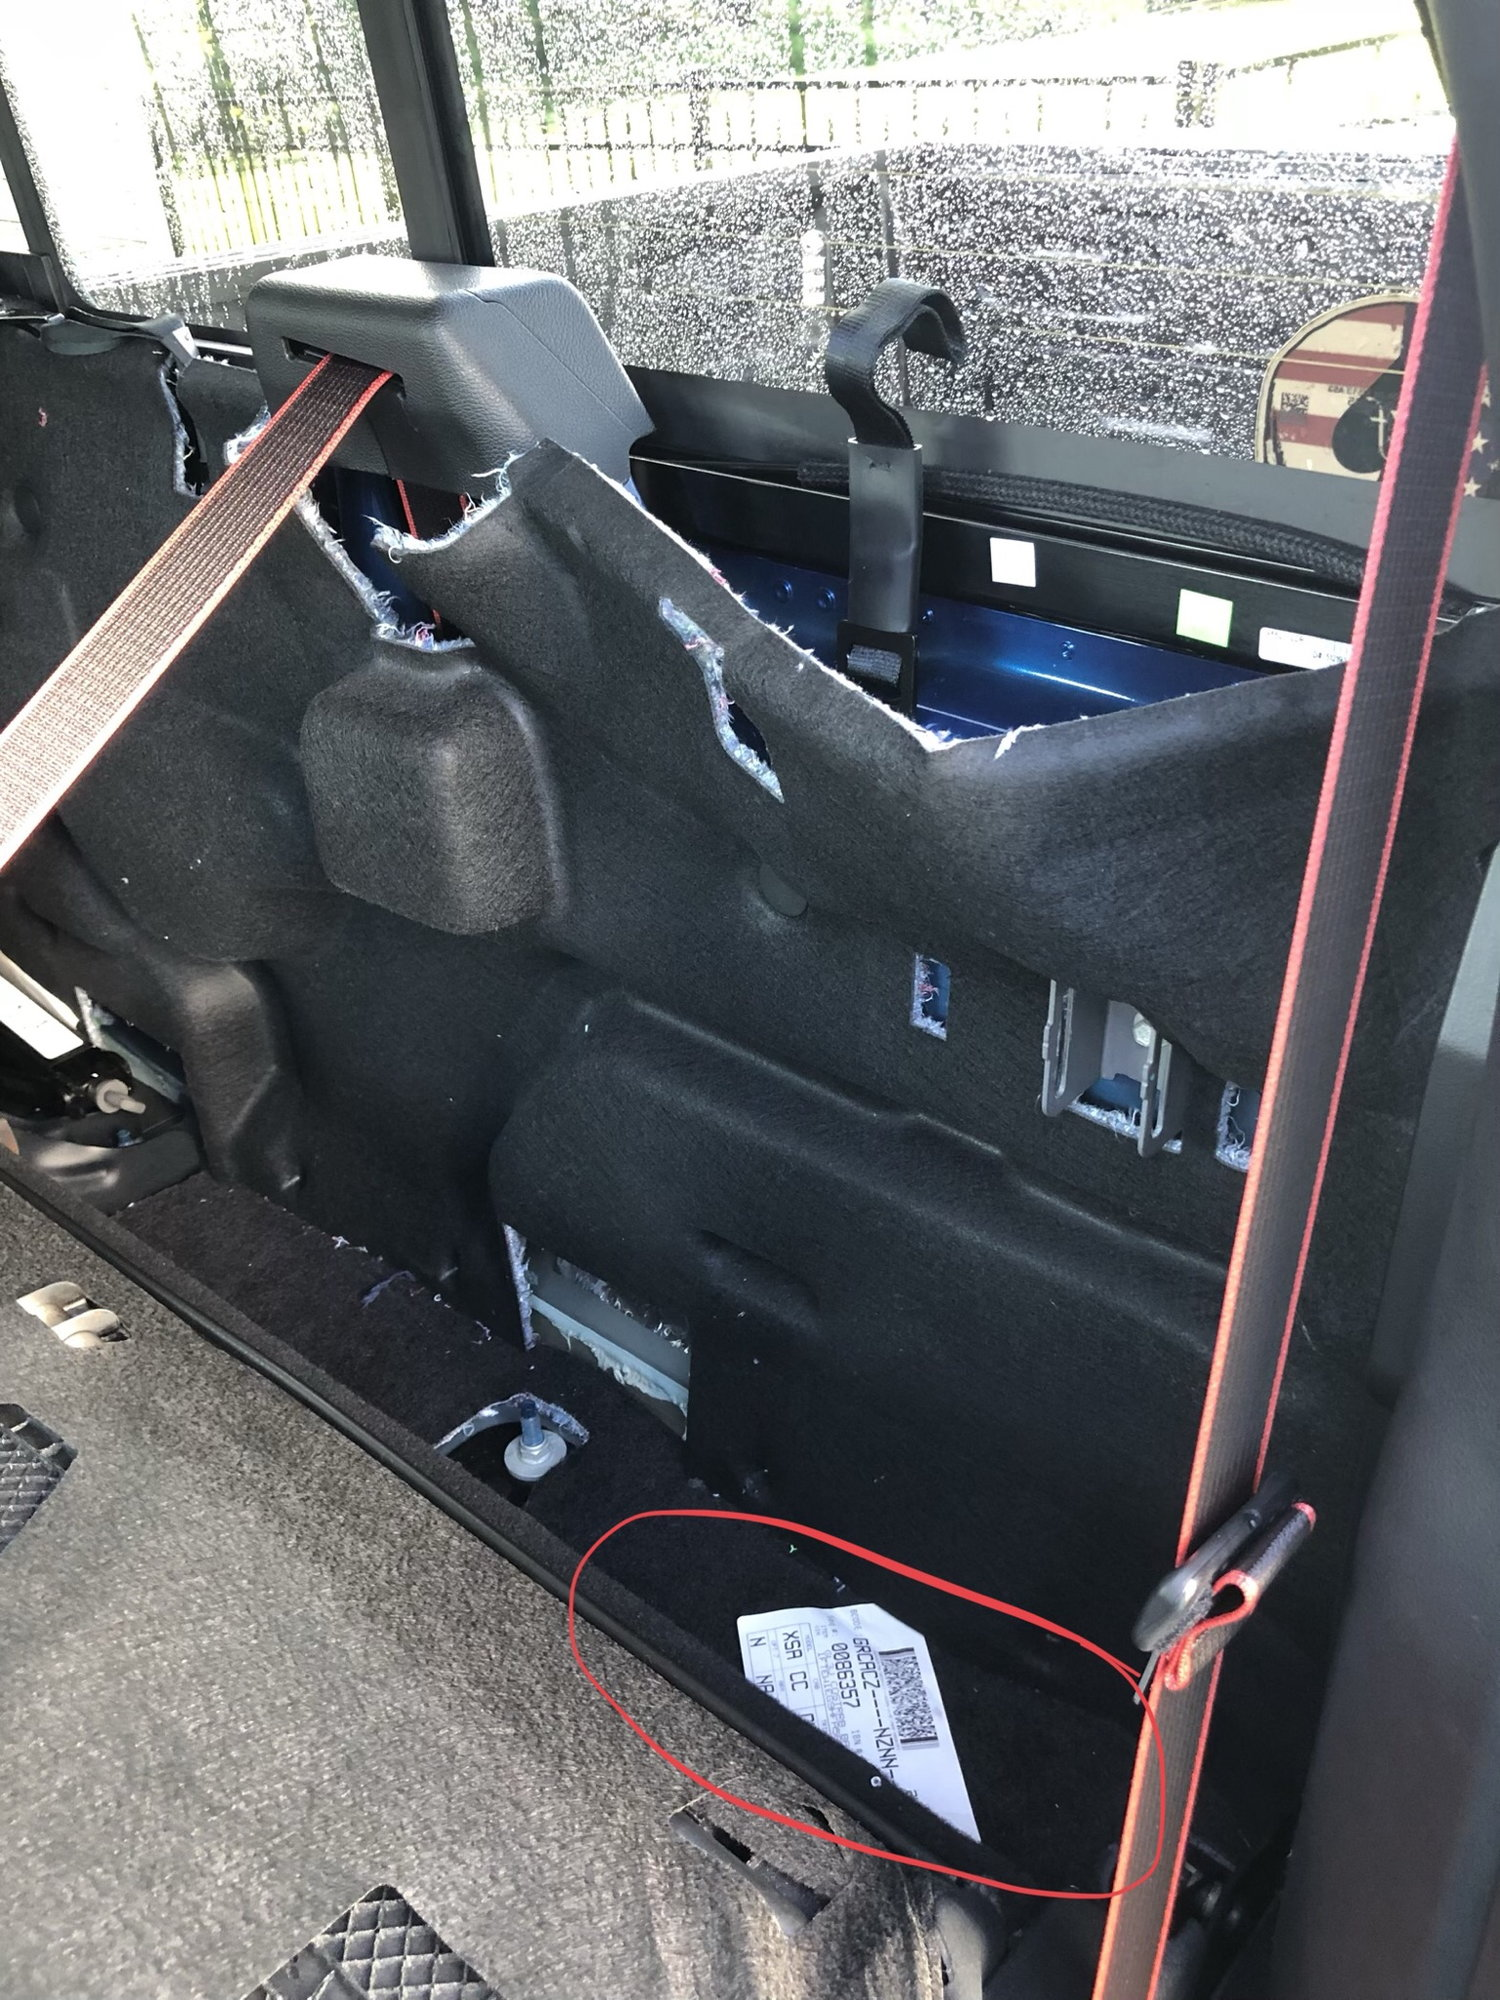 Musty mildew smell after rain or wash - Ford F150 Forum